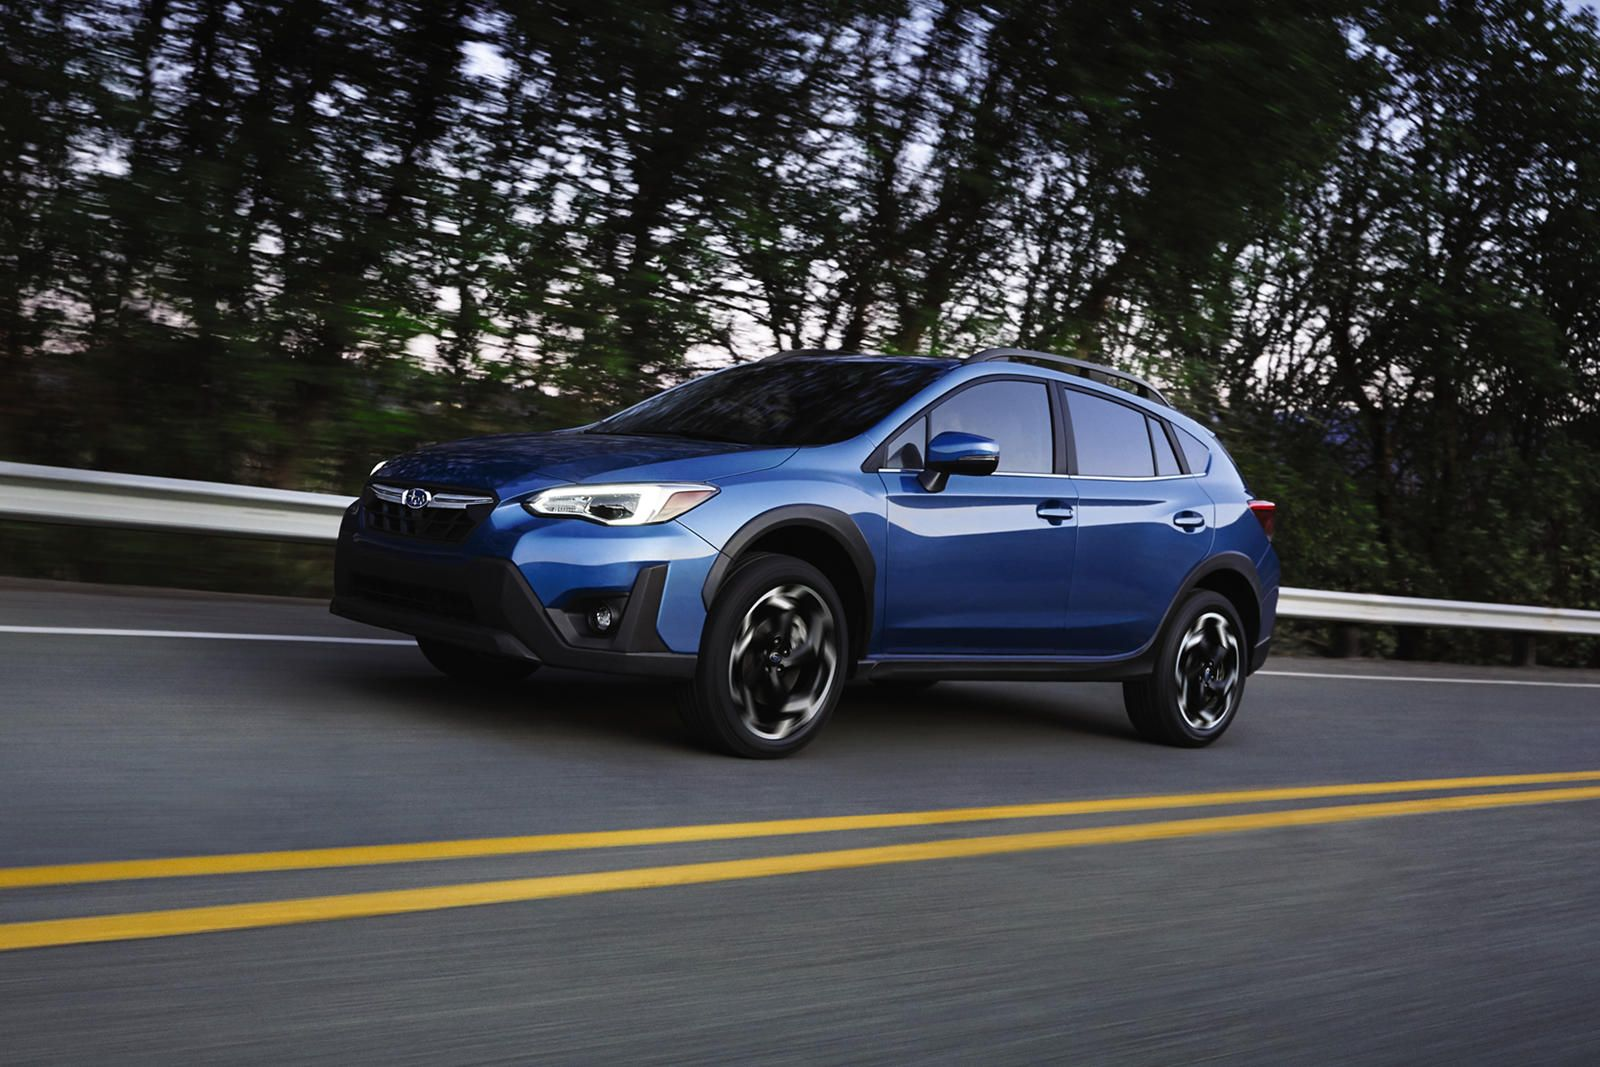 2021 Subaru Crosstrek First Look Review More Power And Style A Midlife Refresh Brings All The Right Changes In 2020 Subaru Crosstrek Subaru Subaru Cars